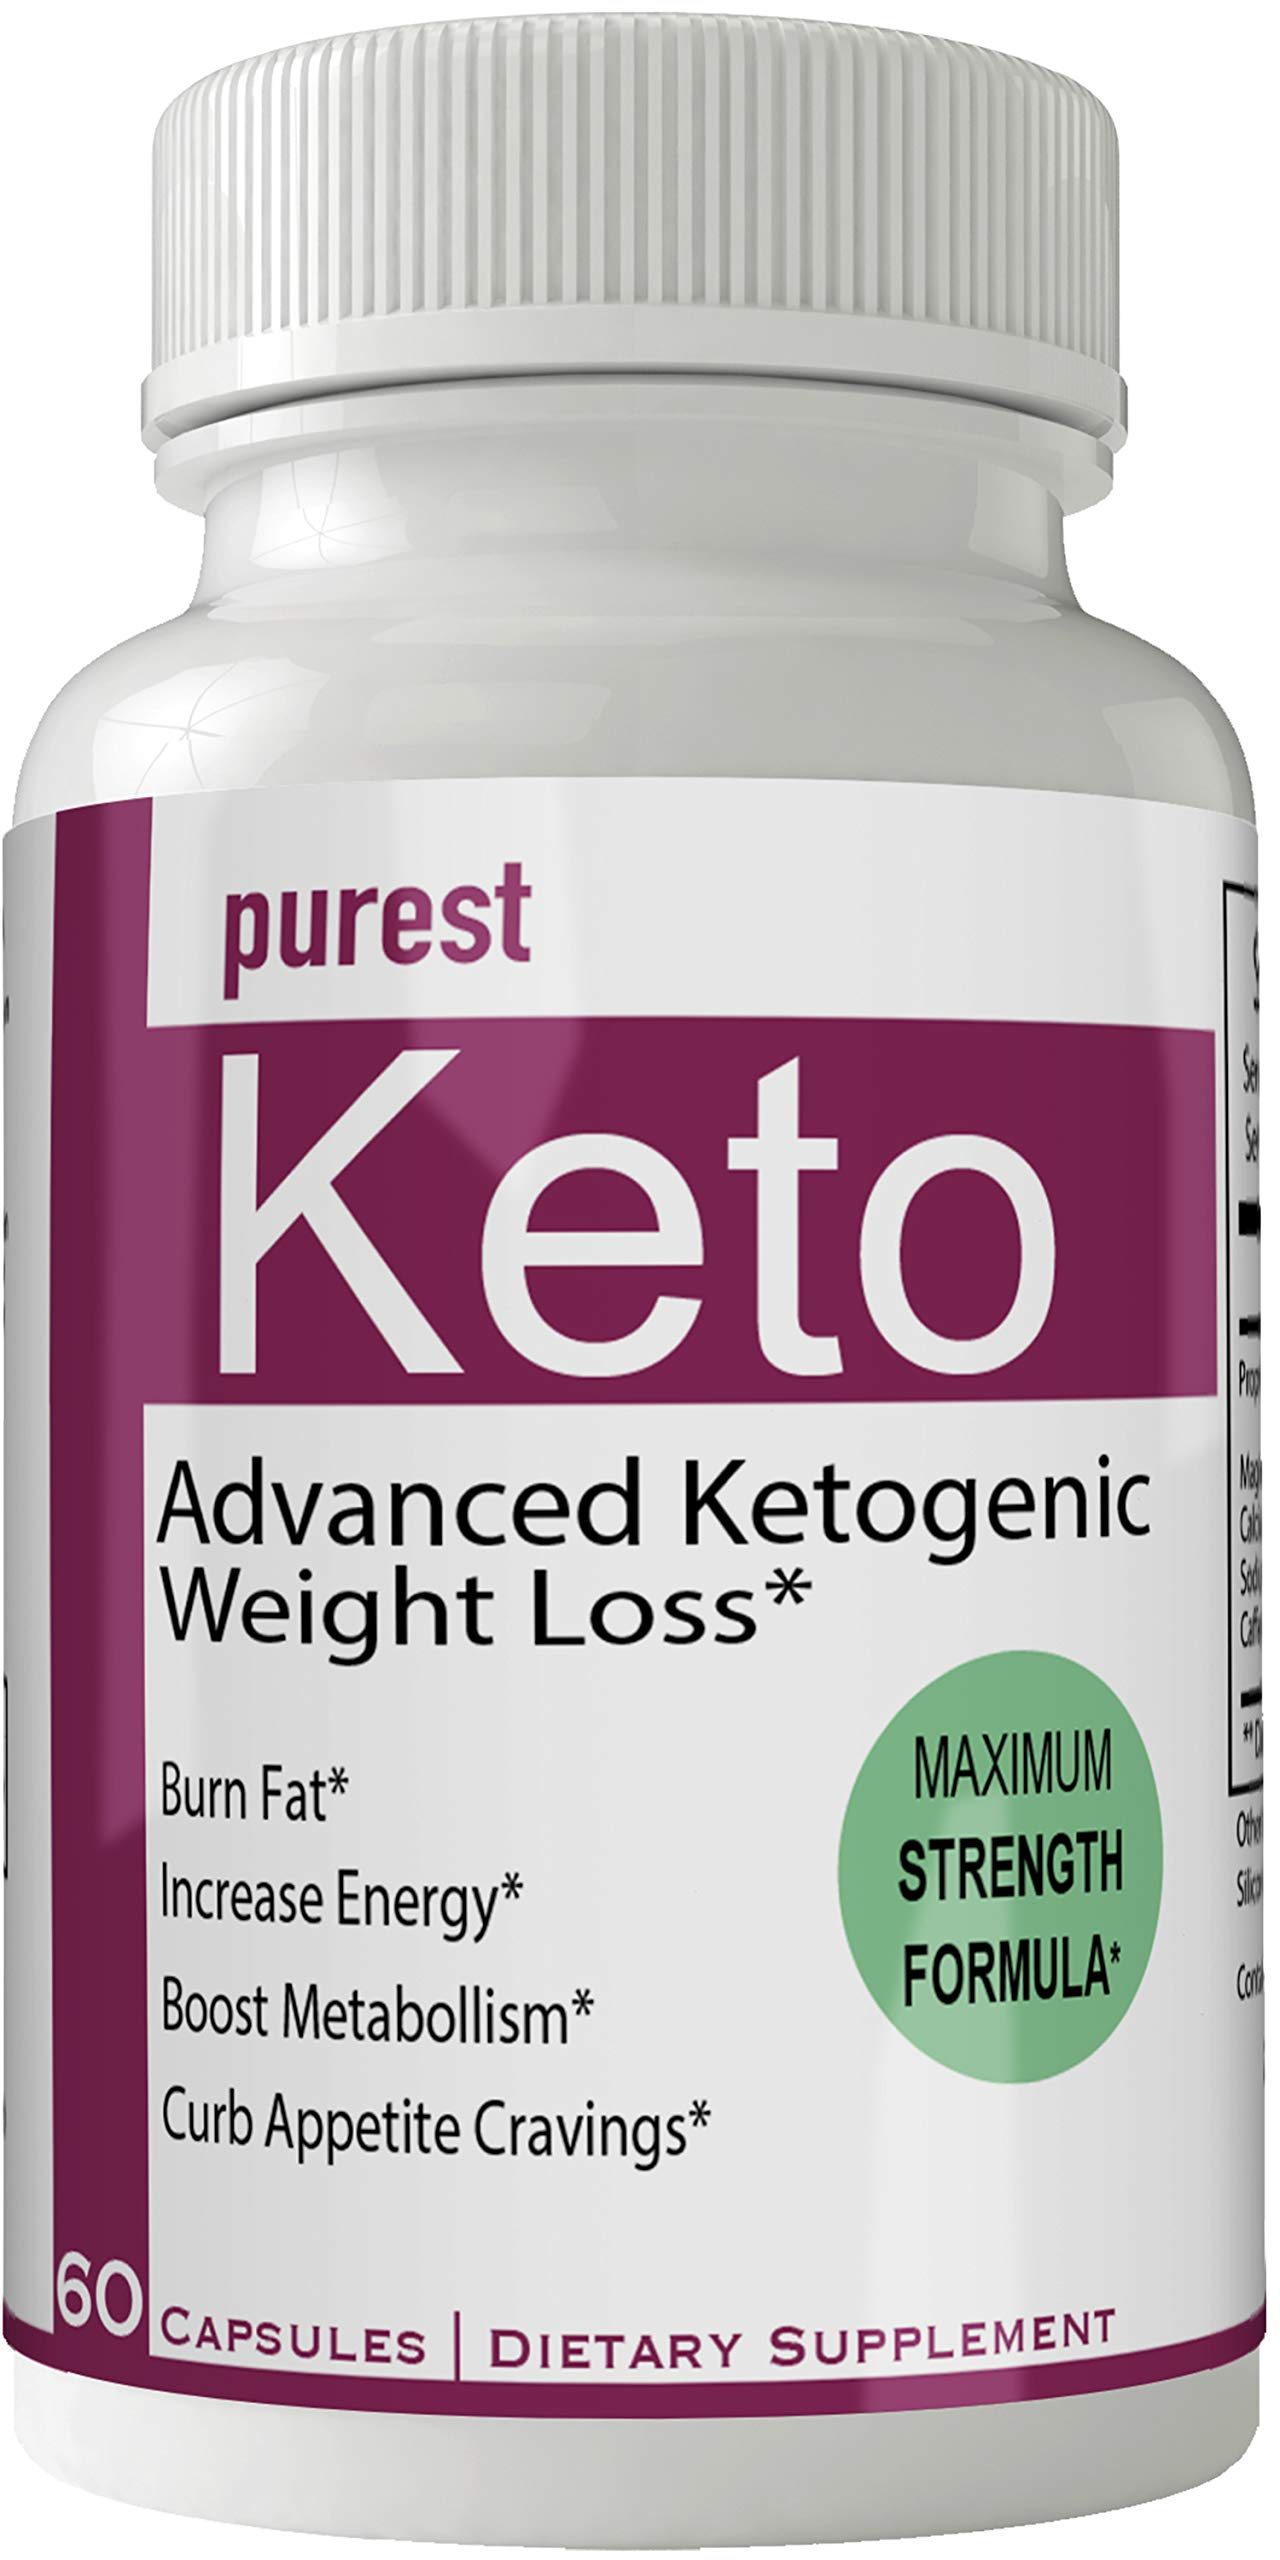 Purest Keto Diet Pills Advance Weight Loss Supplement Appetite Suppressant Natural Ketogenic 800 mg Formula with BHB Salts Ketone Diet Capsules to Boost Metabolism, Energy and Focus by nutra4health LLC